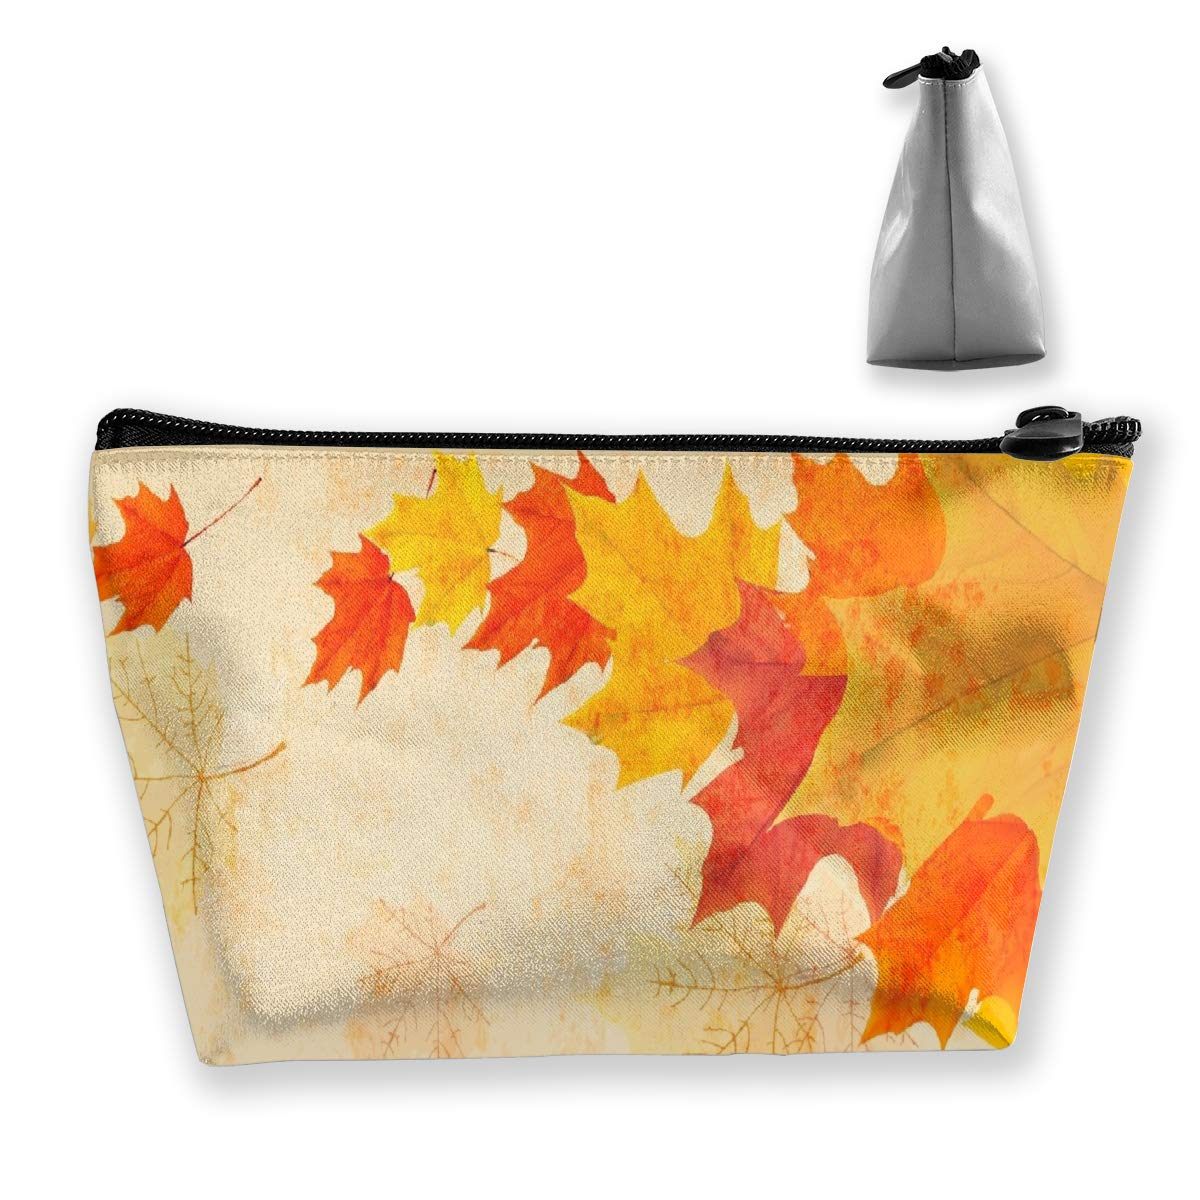 Trapezoid Toiletry Pouch Portable Travel Bag Maple Leaves Pen Organizer by Laur (Image #1)